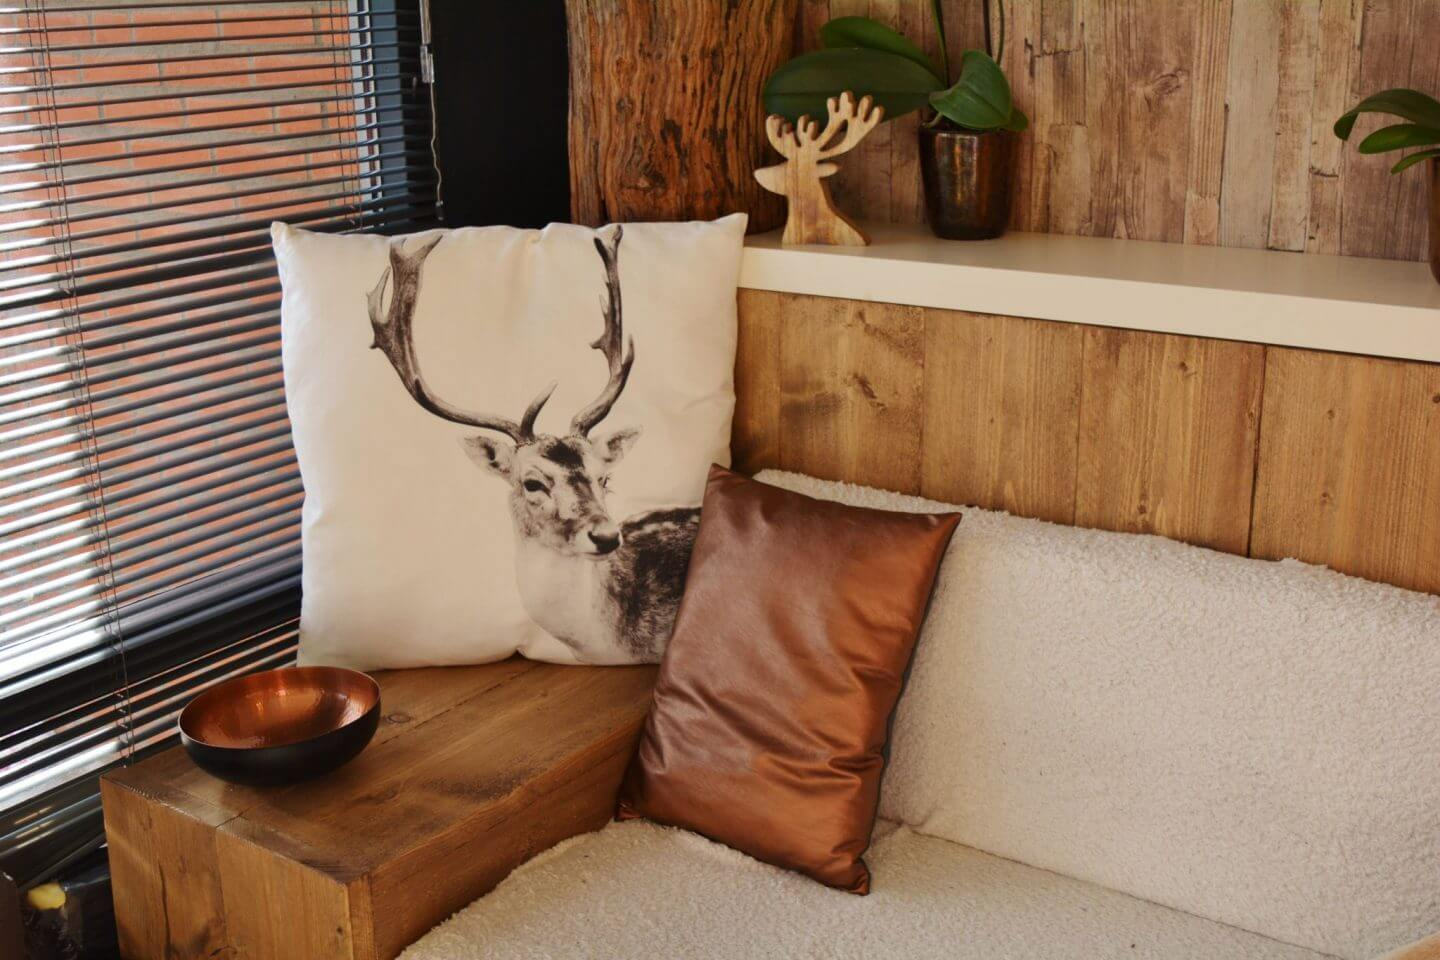 cushion with stag on it on bed